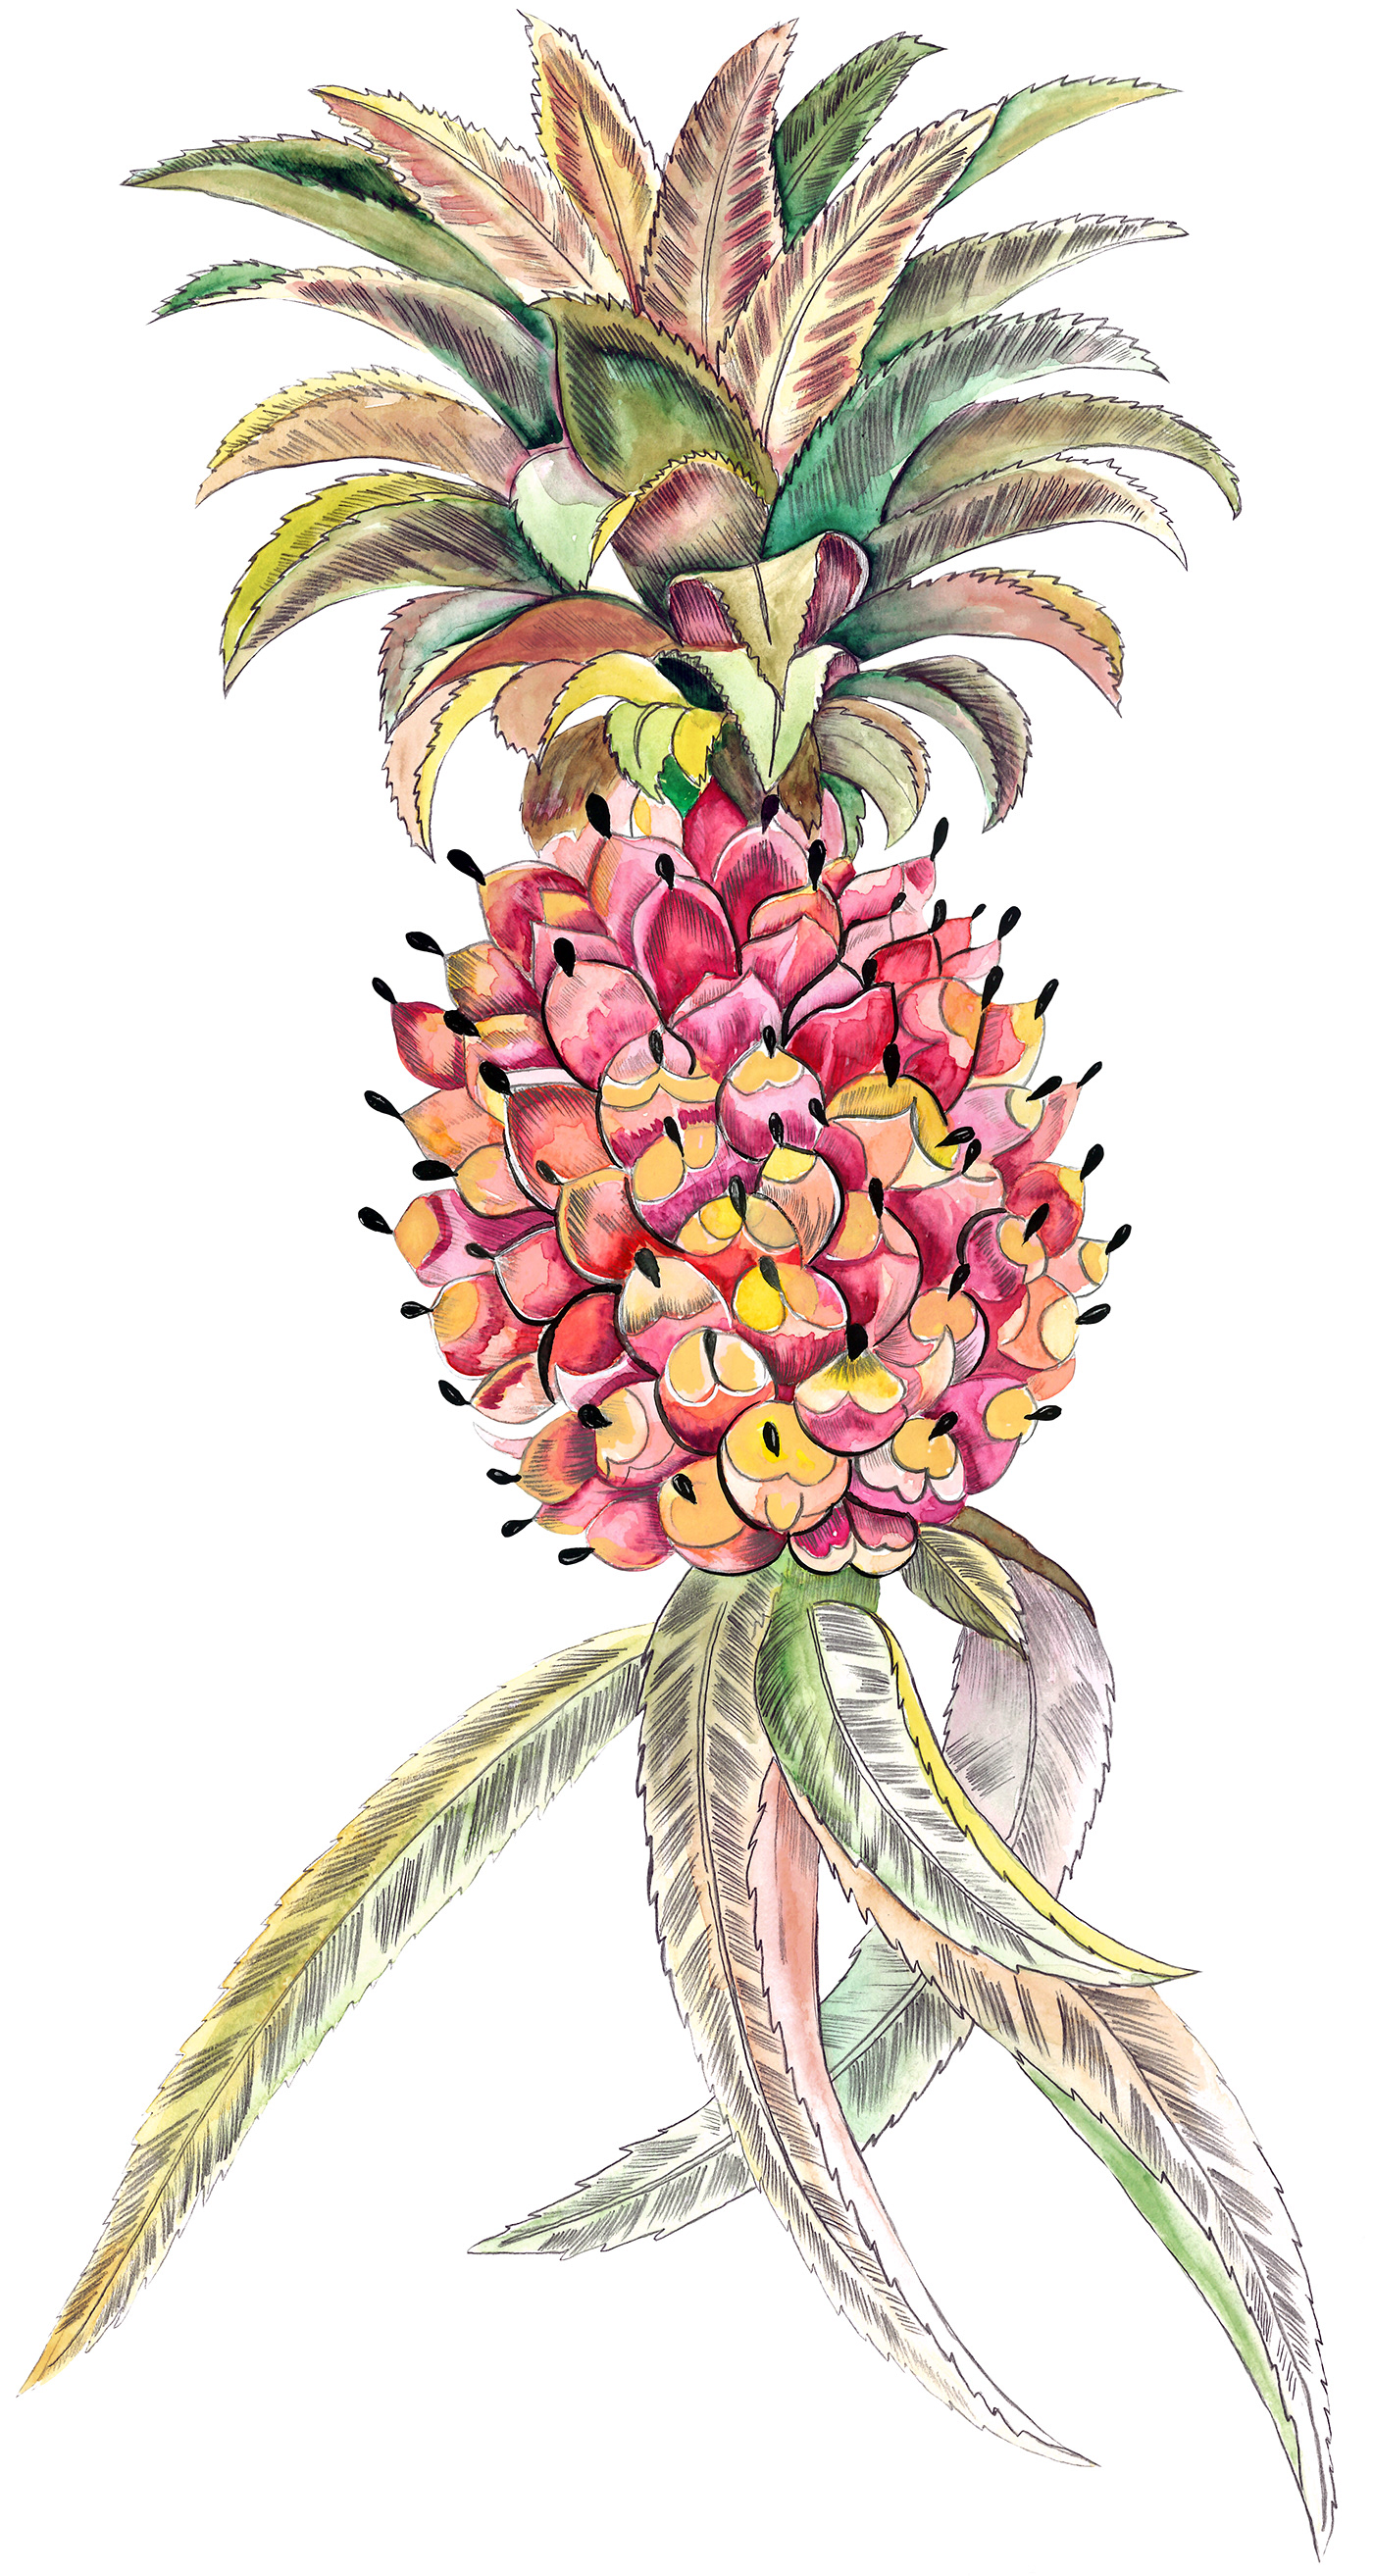 Image may contain: flower, drawing and art